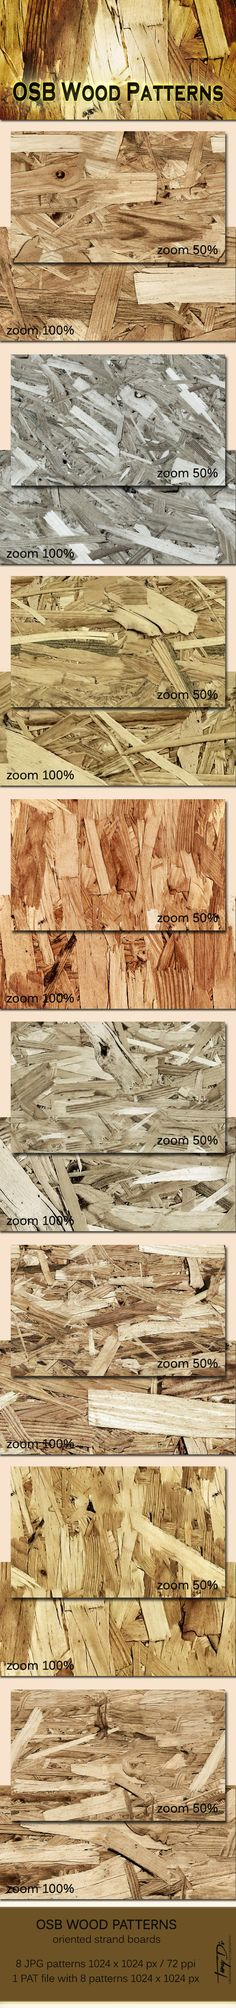 OSB Wood Patterns — Photoshop PAT #foil #engineered • Available here → https://graphicriver.net/item/osb-wood-patterns/5934391?ref=pxcr